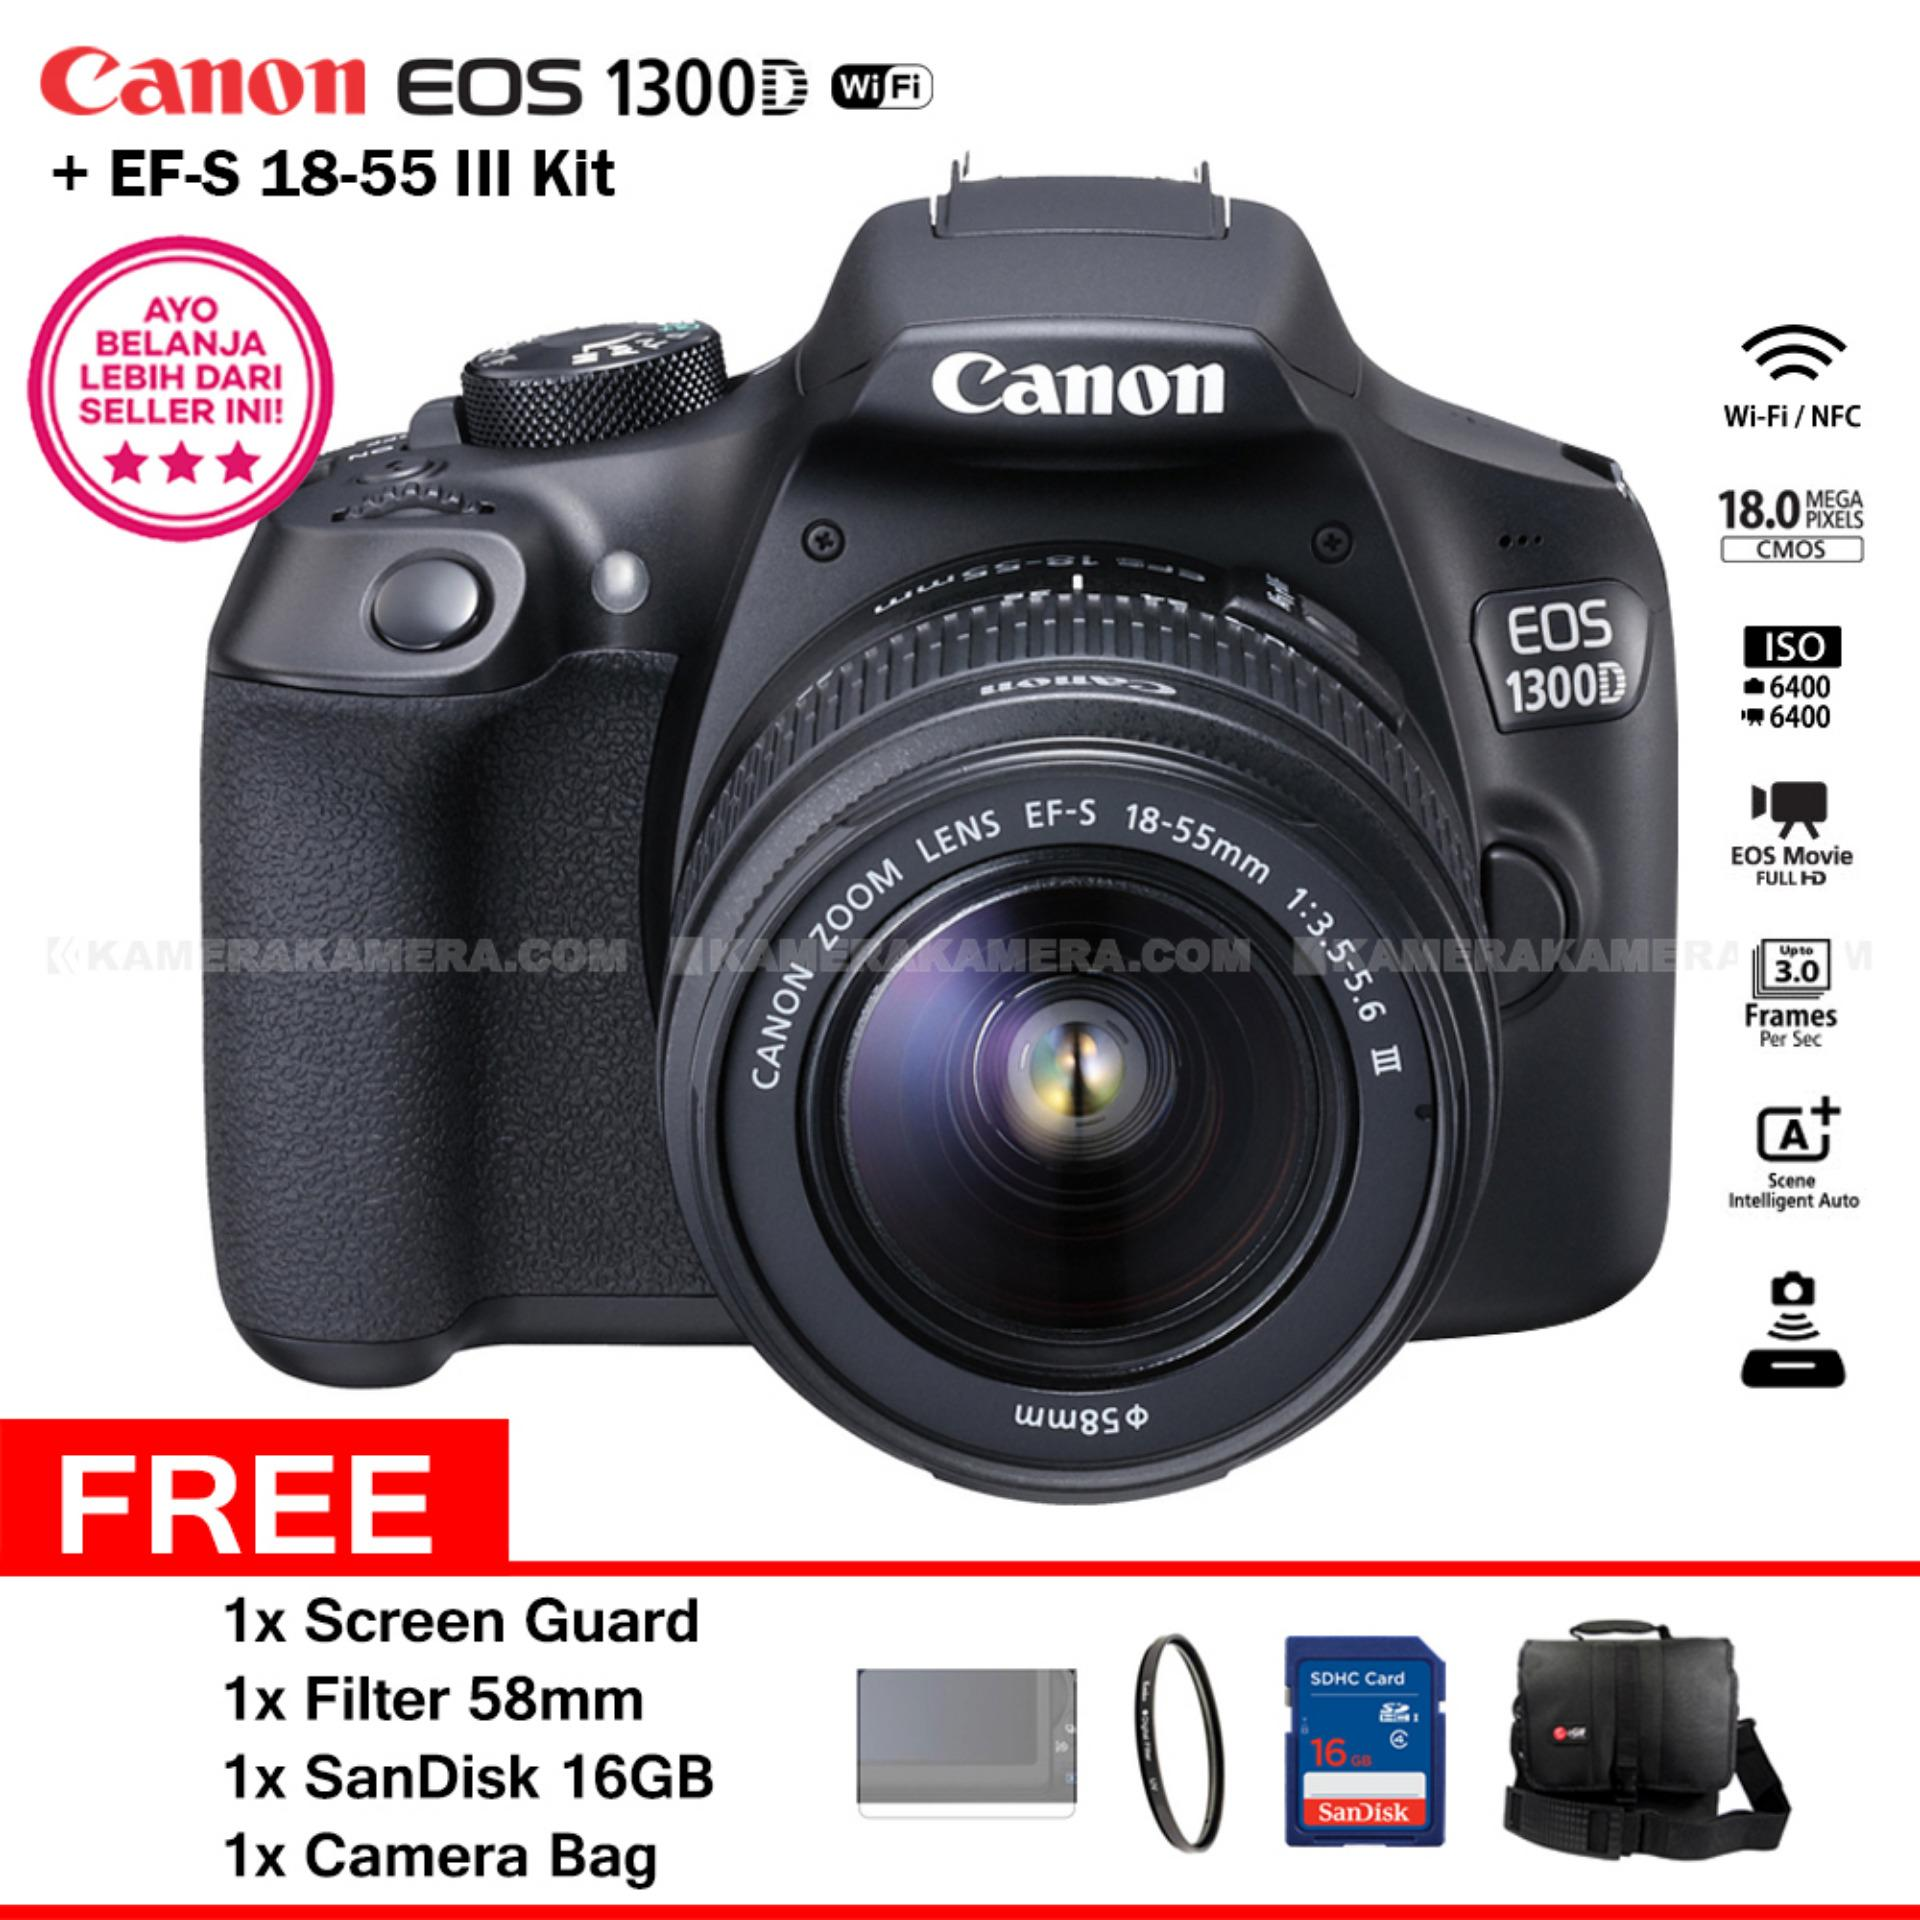 Canon EOS 1300D (Wi-Fi) 18-55mm III + Screen Guard + Filter 58mm + SanDisk 16Gb + Camera Bag